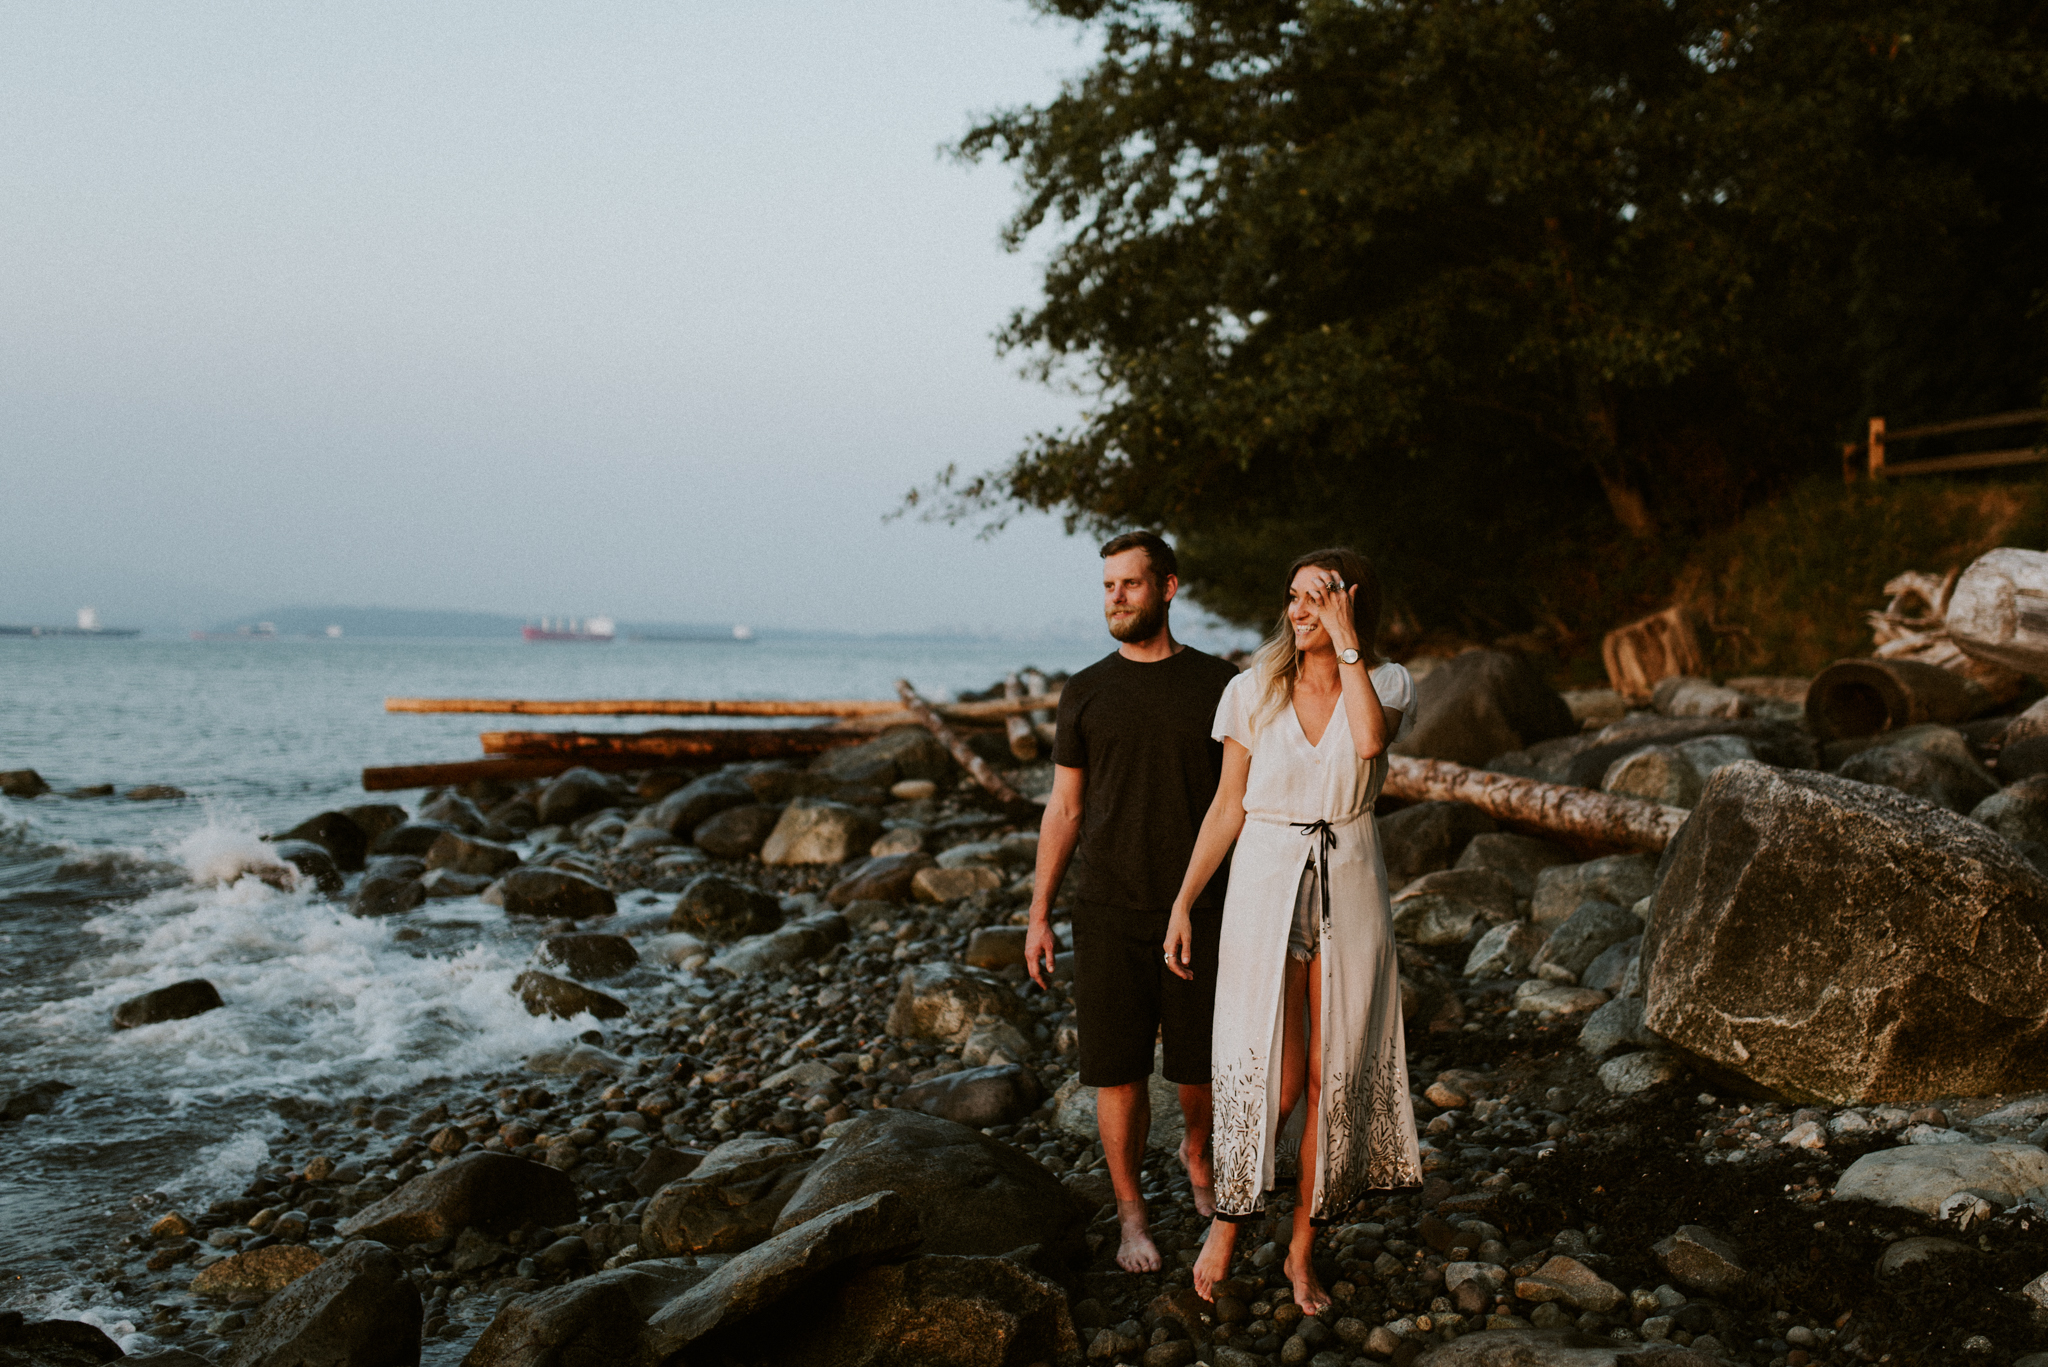 069_StacieCarrPhotography_vancouver-elopement-photographer-adventurous-engagement-smoke-bomb-beach.jpg